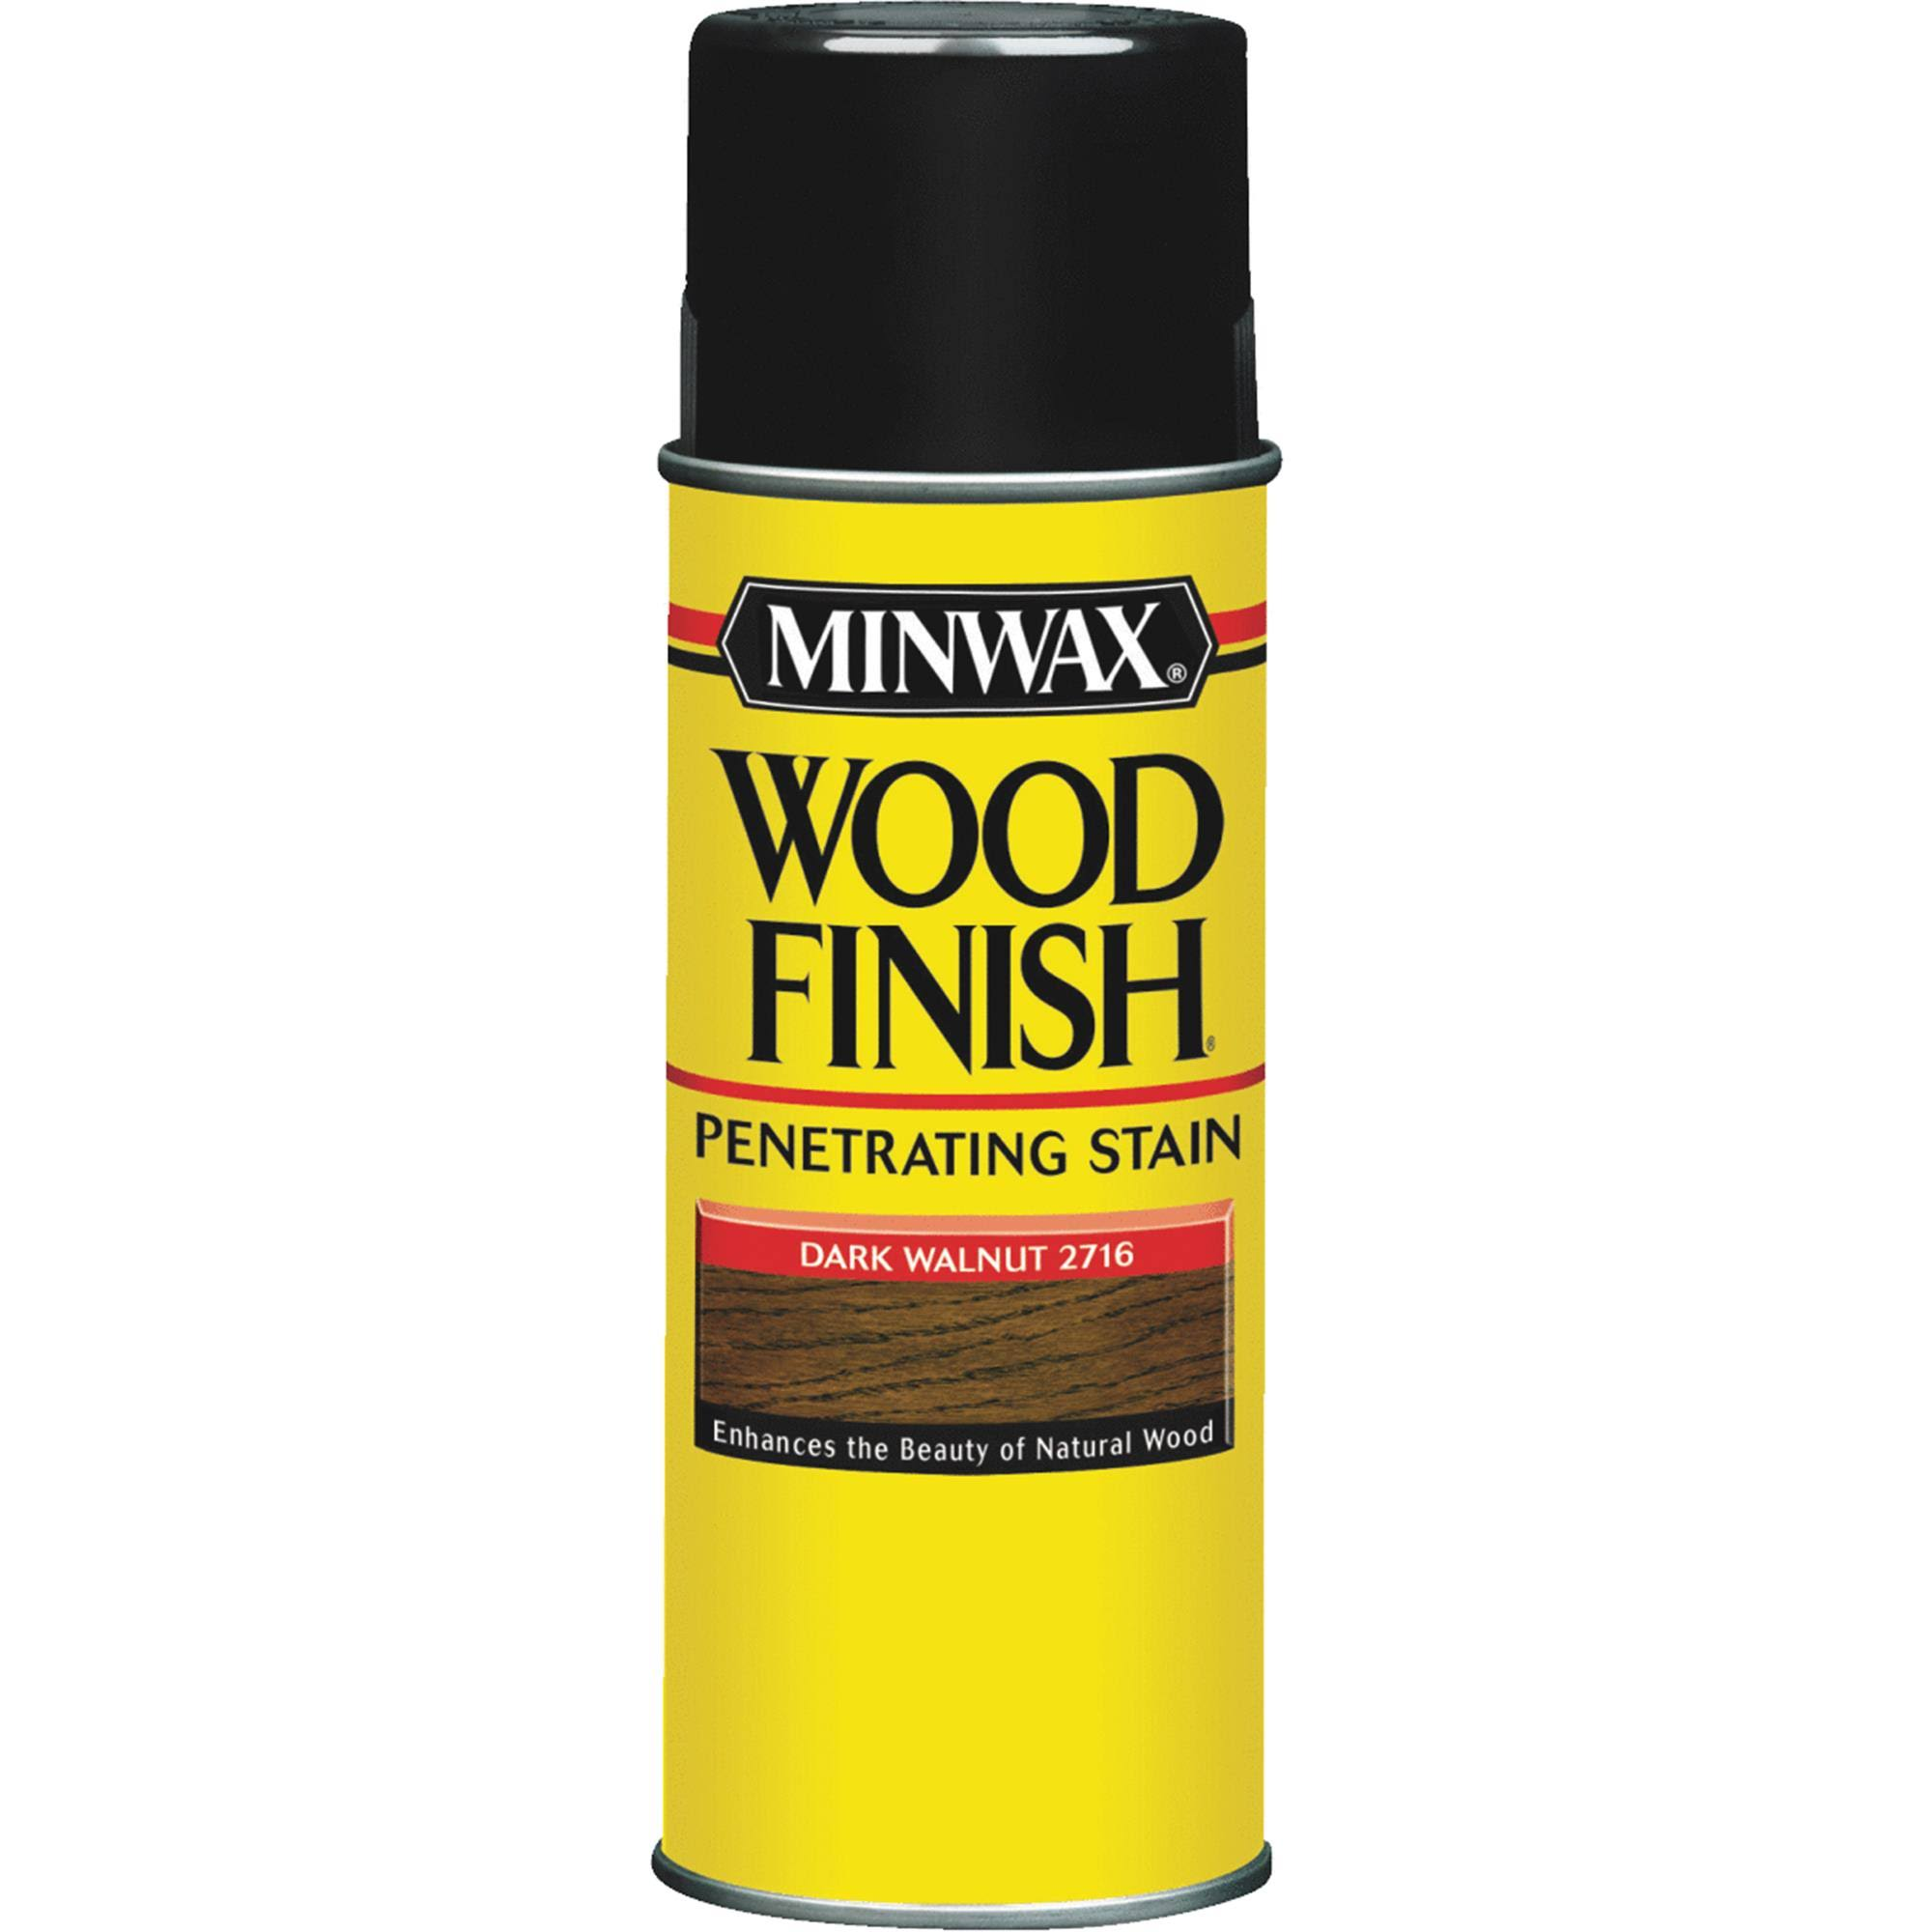 Minwax Wood Finish Spray Stain - Dark Walnut, 11.5oz